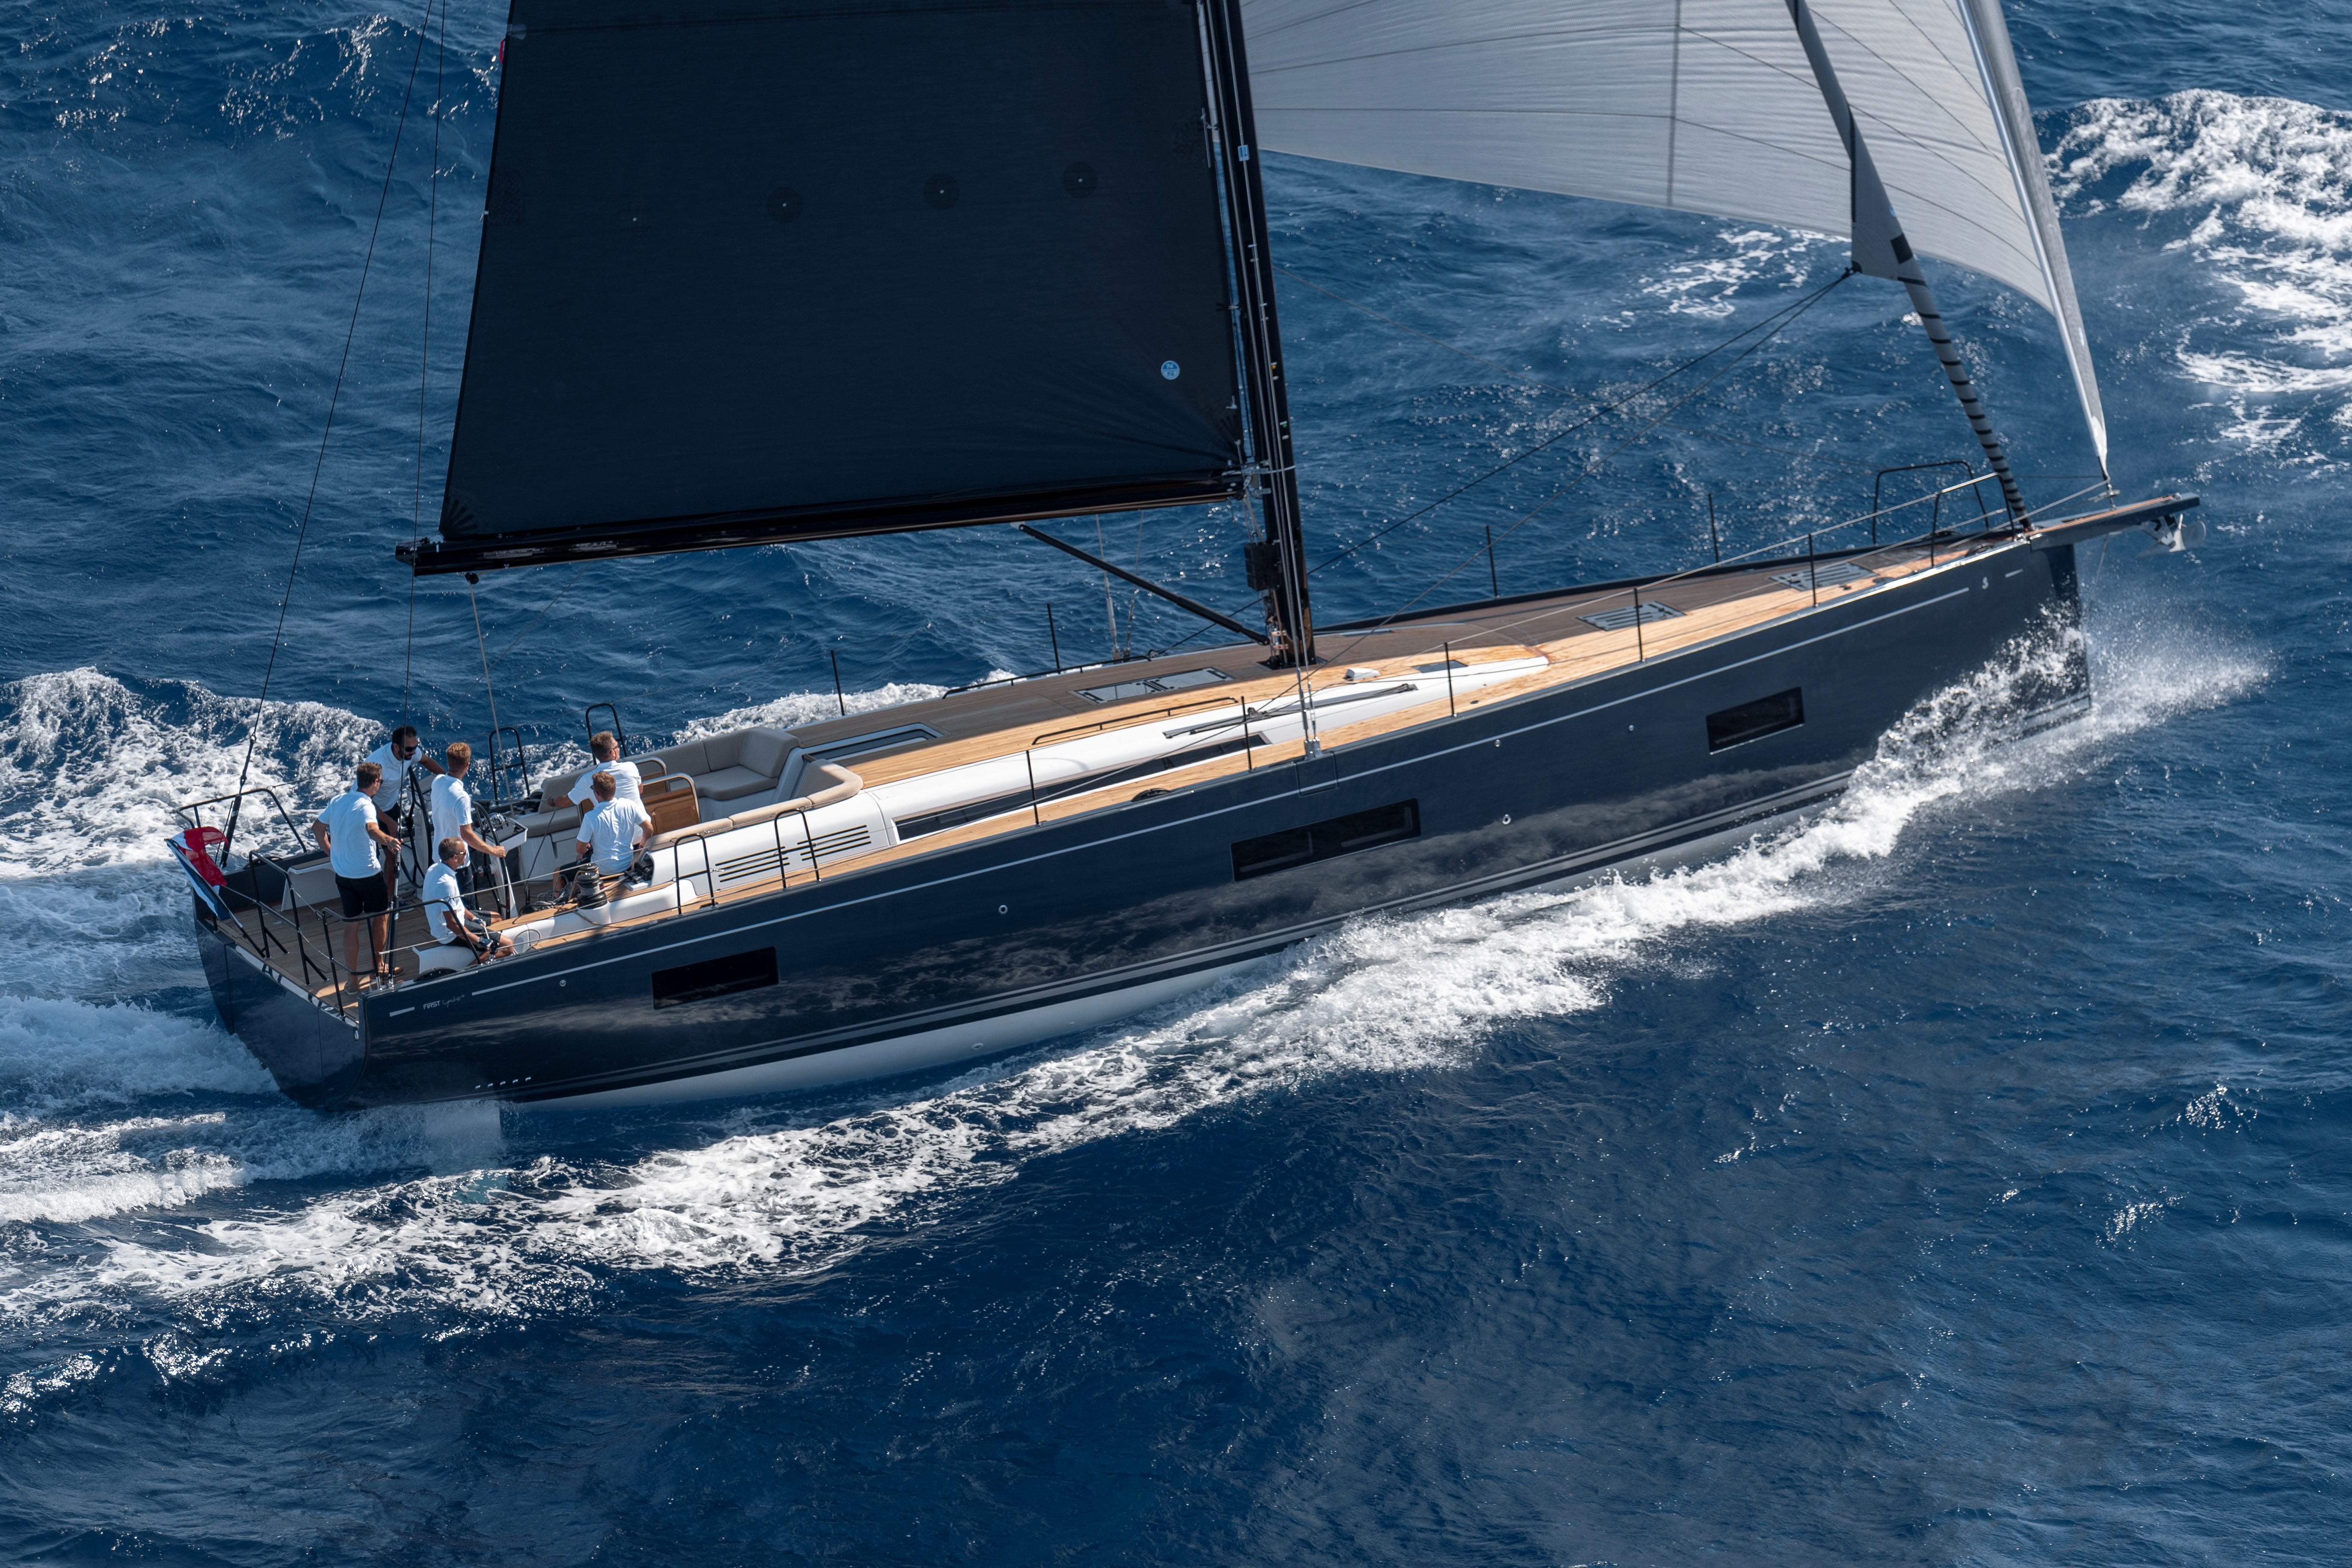 Beneteau First Yacht 53 Beneteau First Yacht 53 - Profile